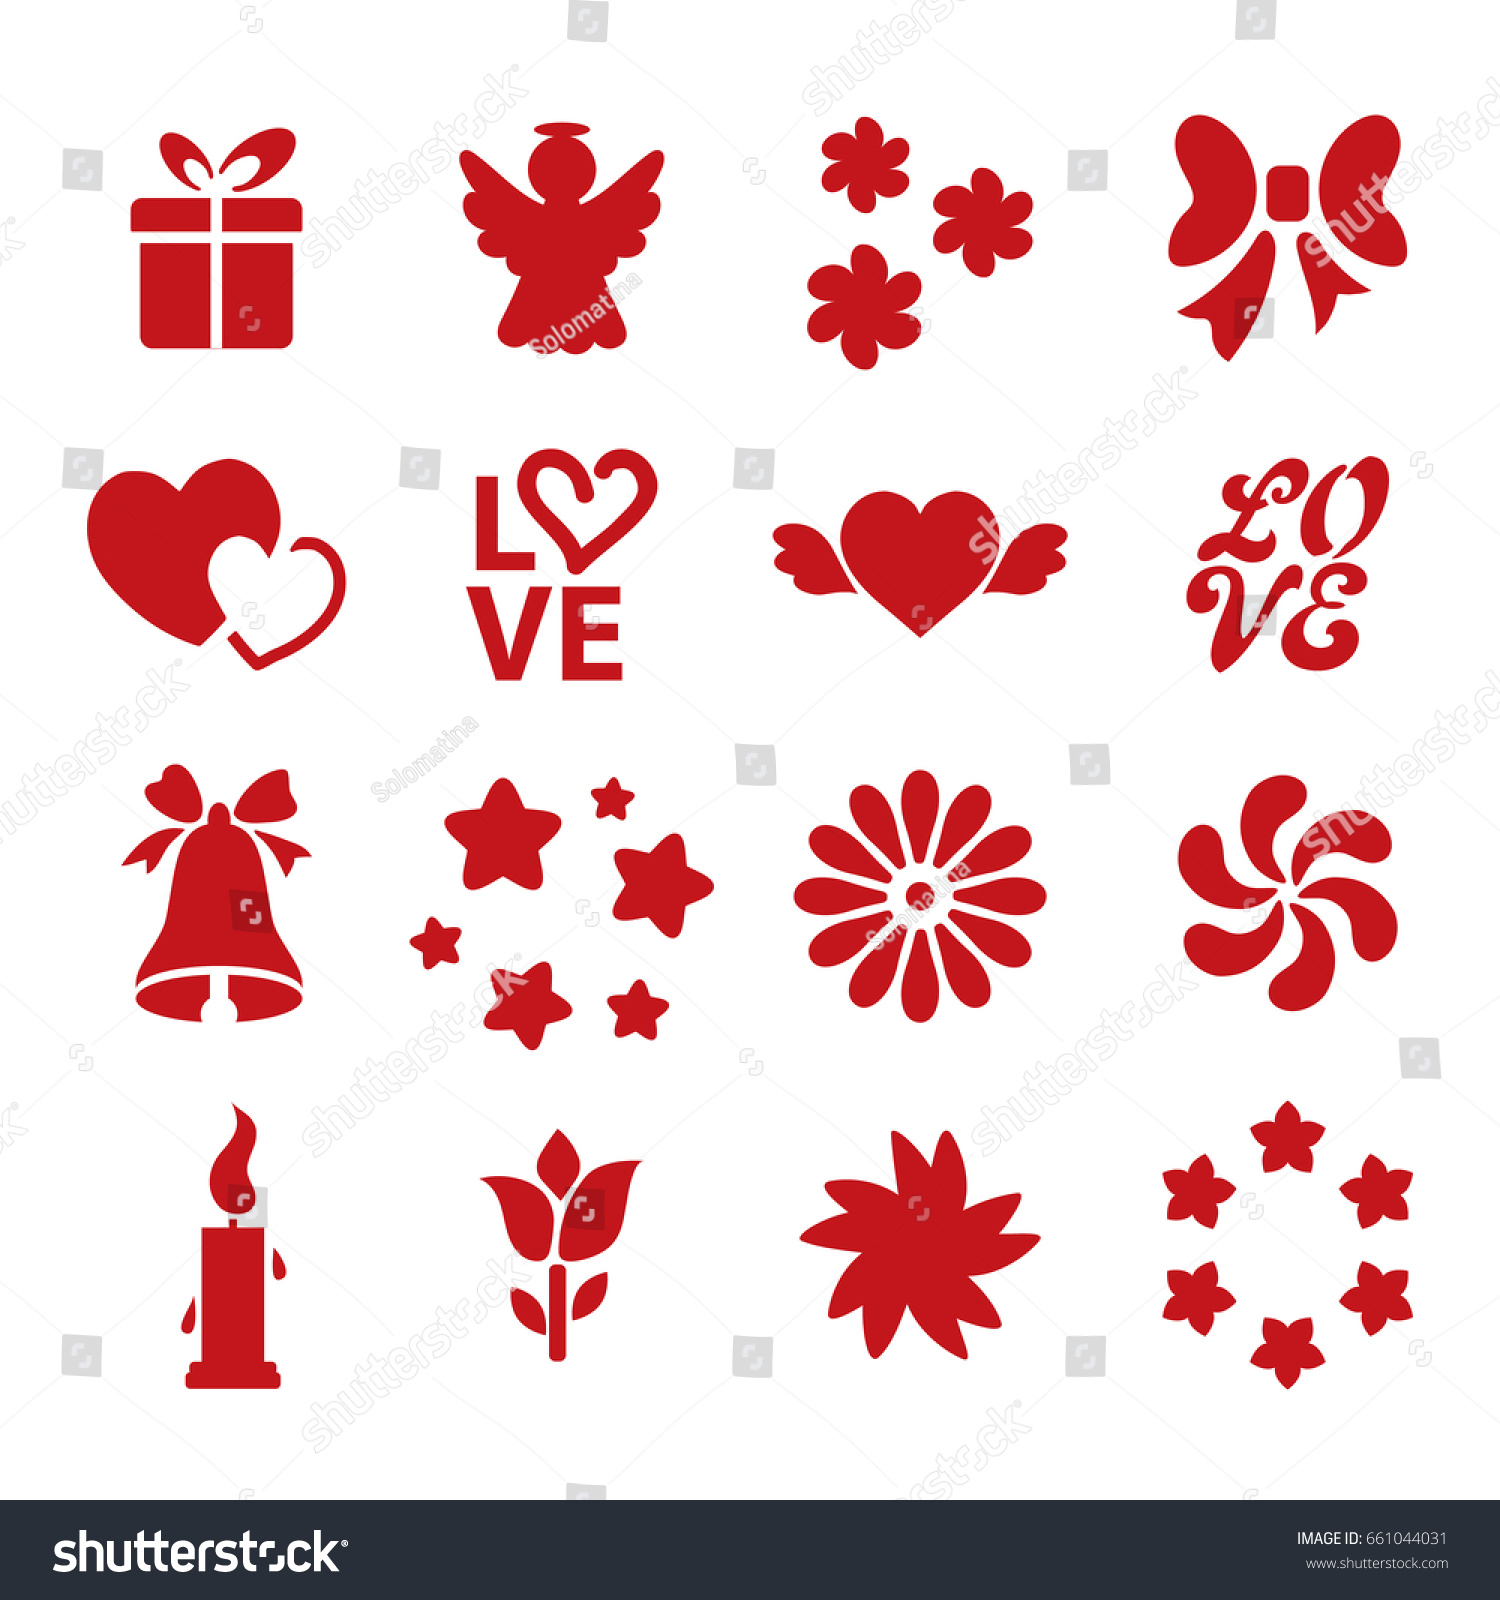 Uncategorized Valentine Stencils set icon valentines day stencils vector stock 661044031 of collection template silhouettes heart